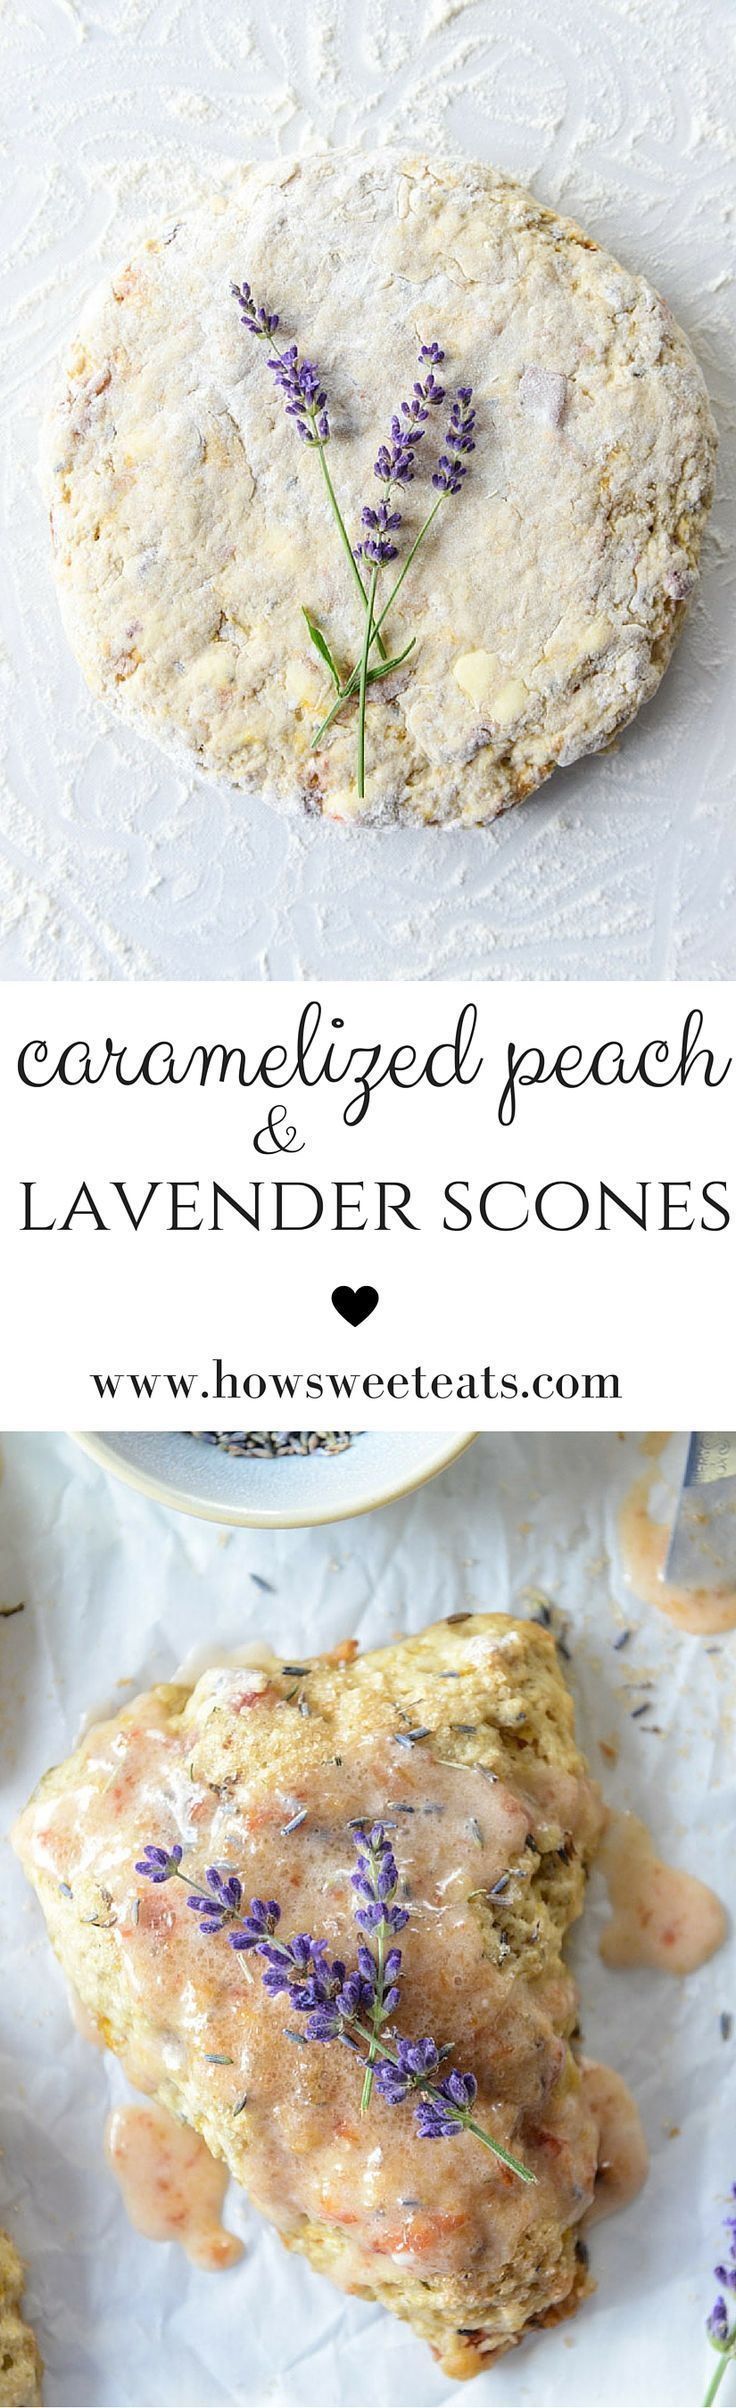 caramelized peach and lavender scones I howsweeteats.com